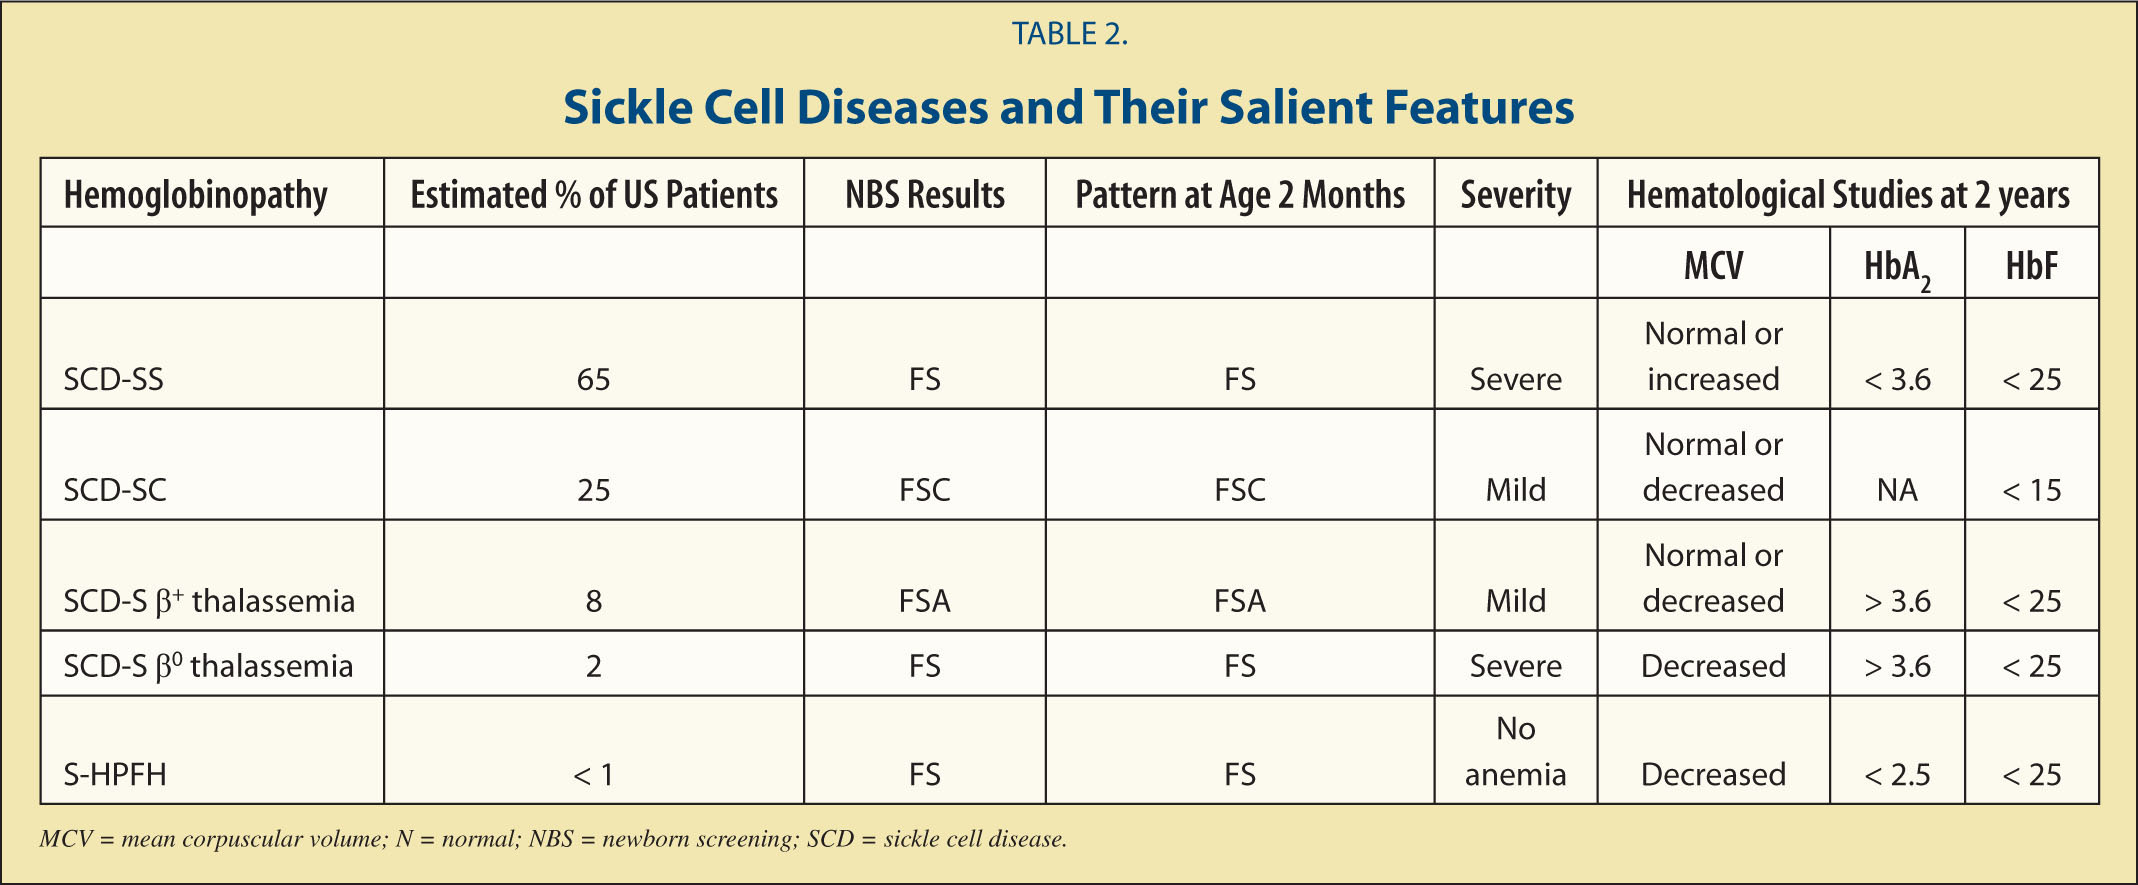 Sickle Cell Diseases and Their Salient Features